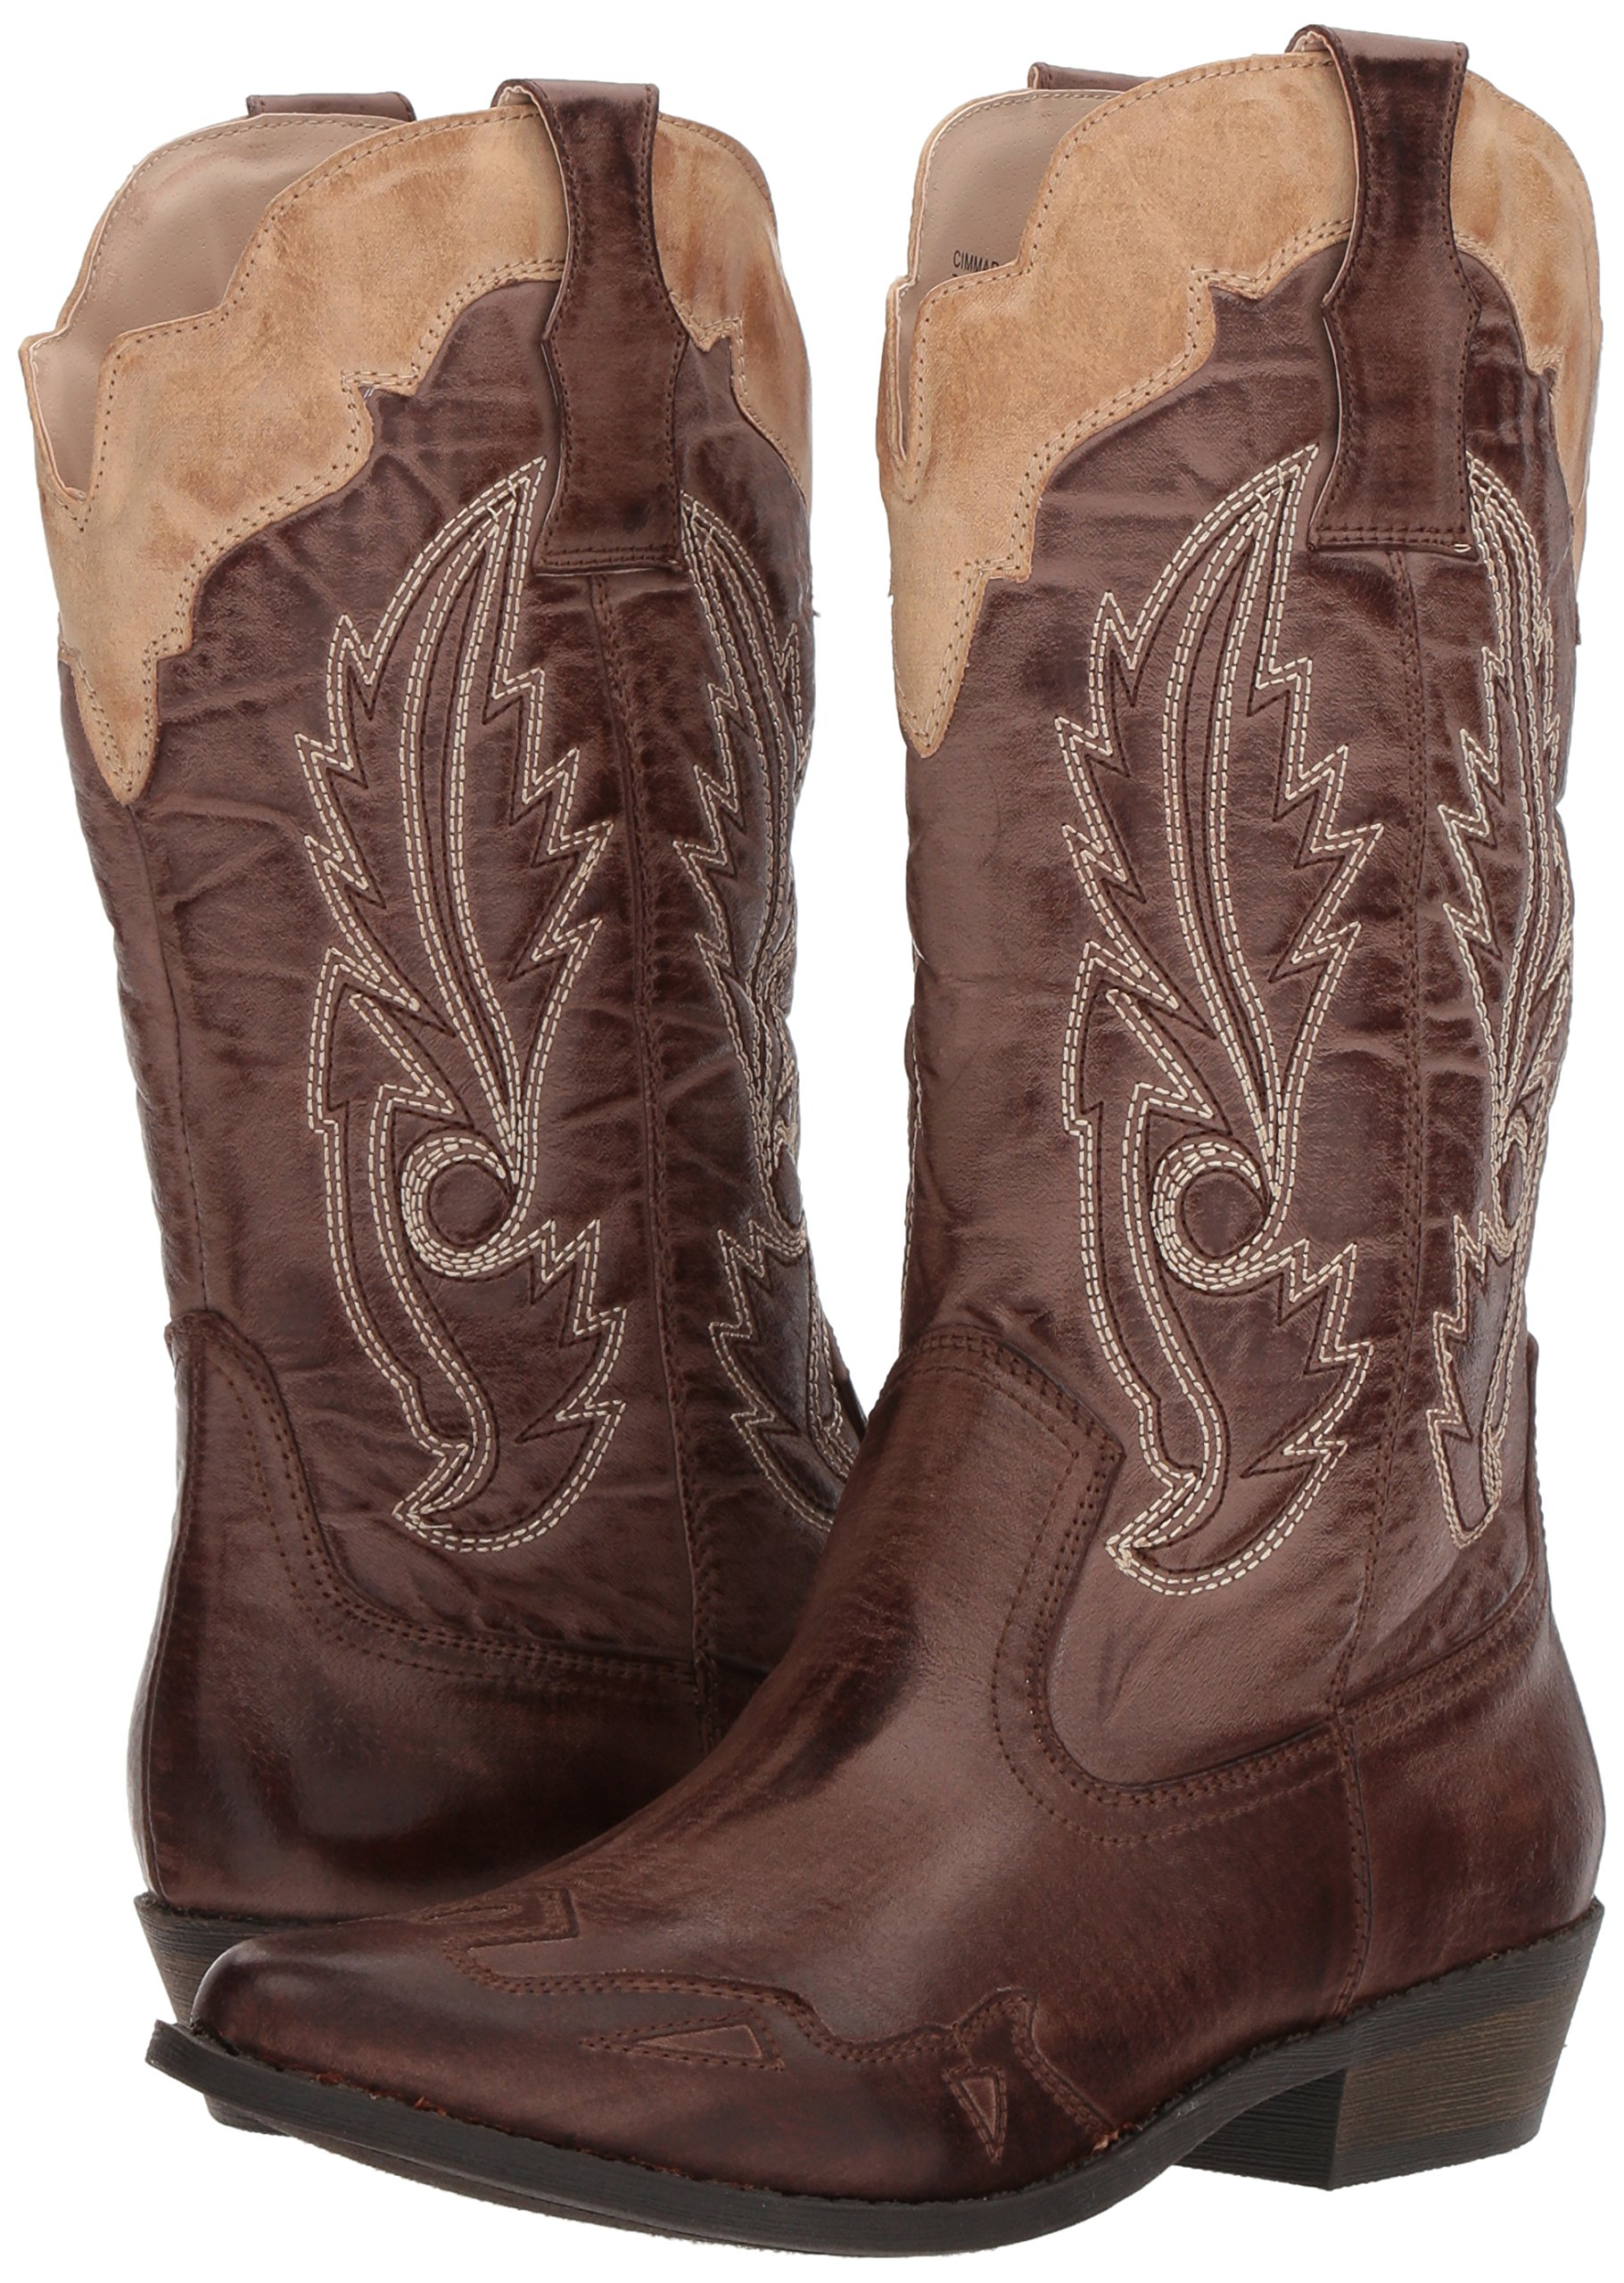 Coconuts by Matisse Women's Cimmaron Boot,Choco/Beige,10 M US by Coconuts by Matisse (Image #6)